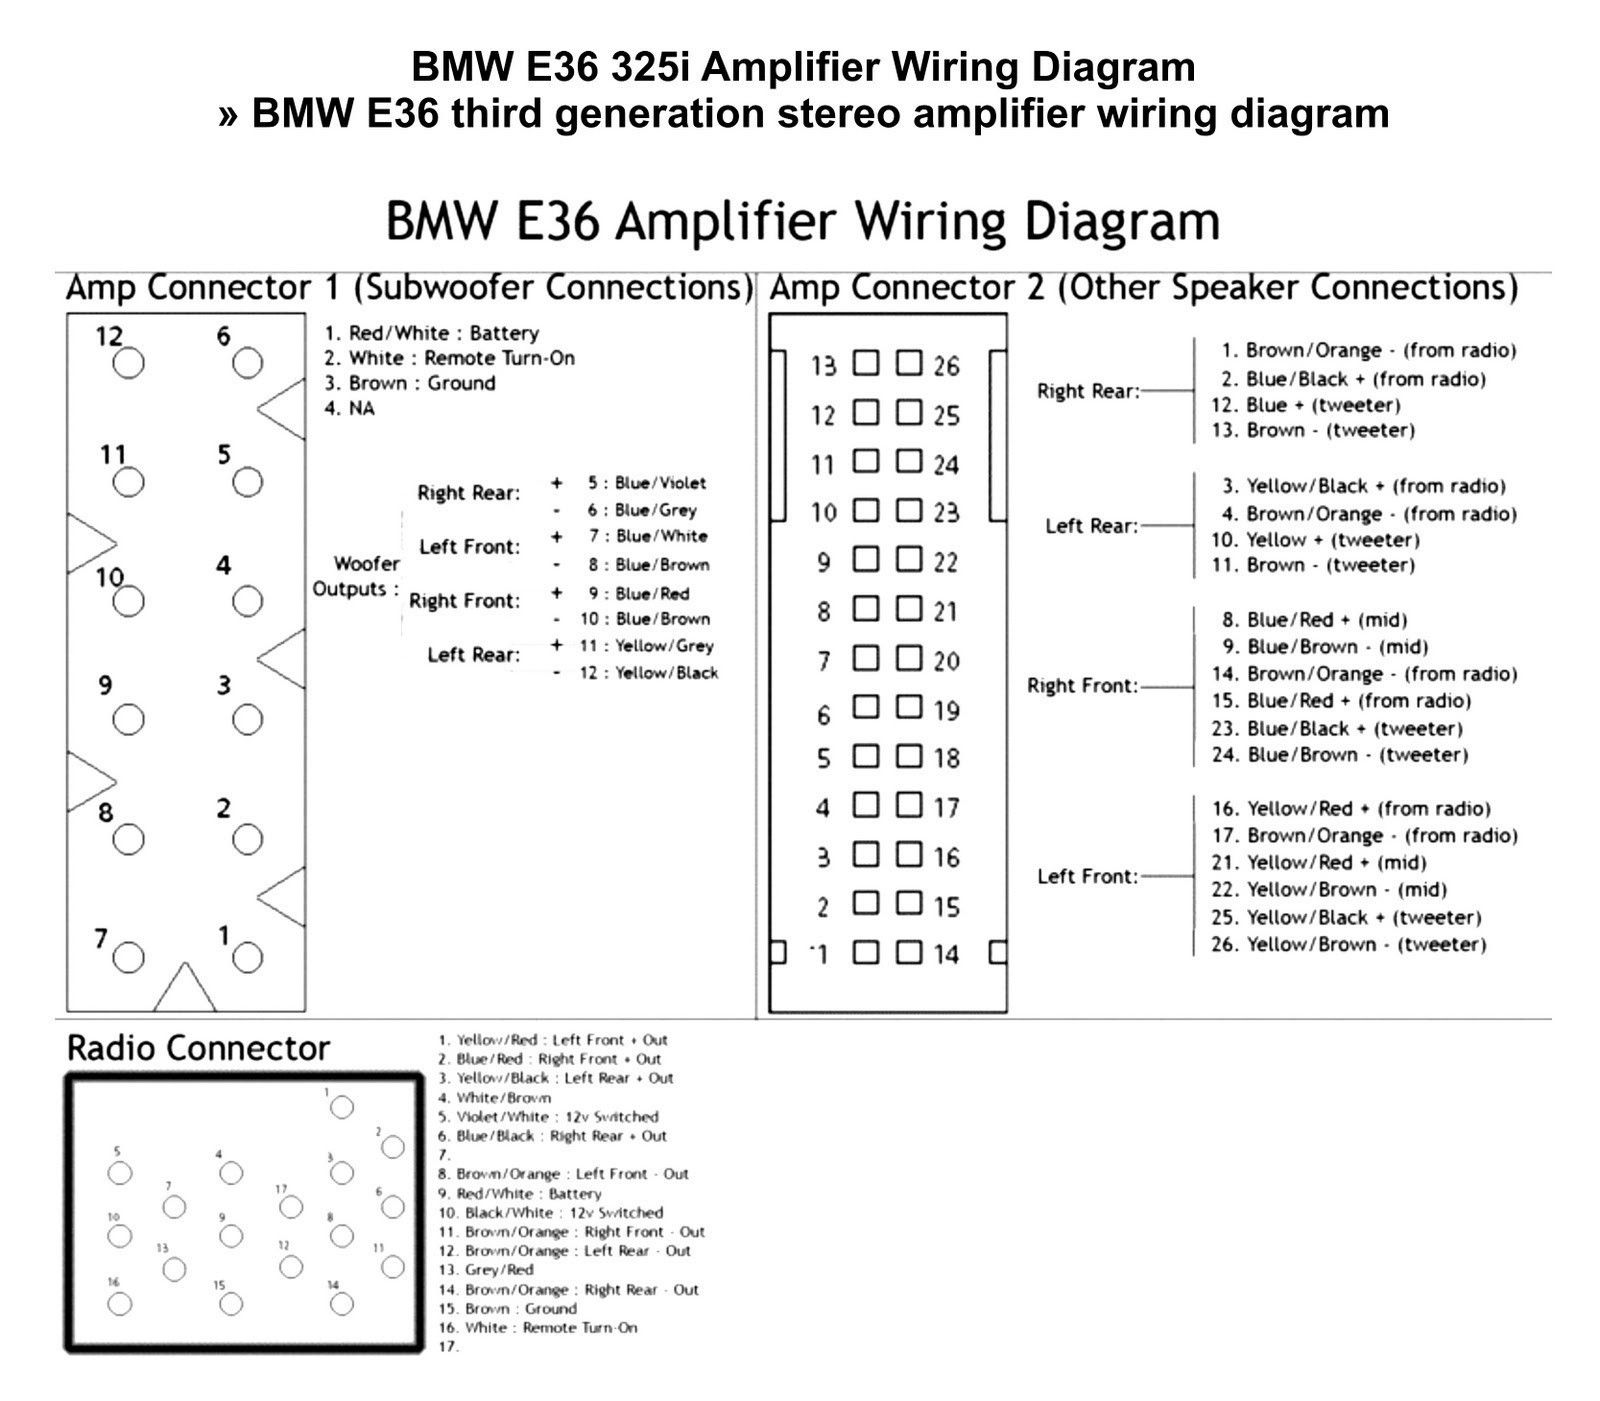 [DIAGRAM_3ER]  Bmw Z4 Radio Wiring - Pressure Switch Schematic Diagram for Wiring Diagram  Schematics | 2004 Bmw Z4 Wiring Diagram |  | Wiring Diagram Schematics